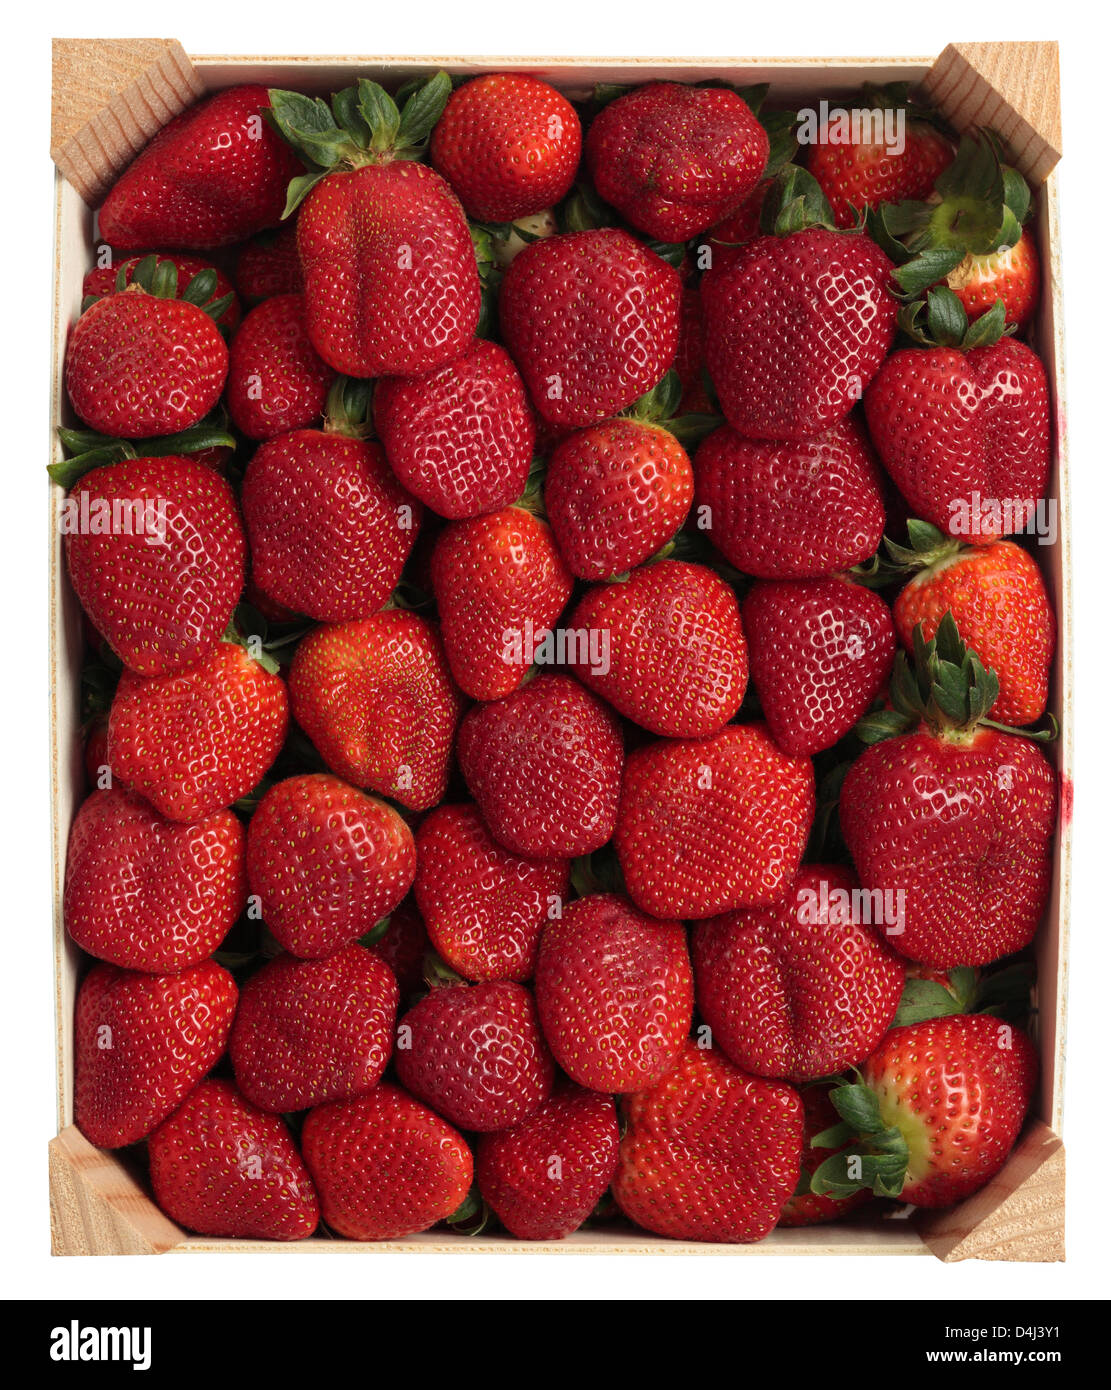 Tray of Strawberries - Stock Image